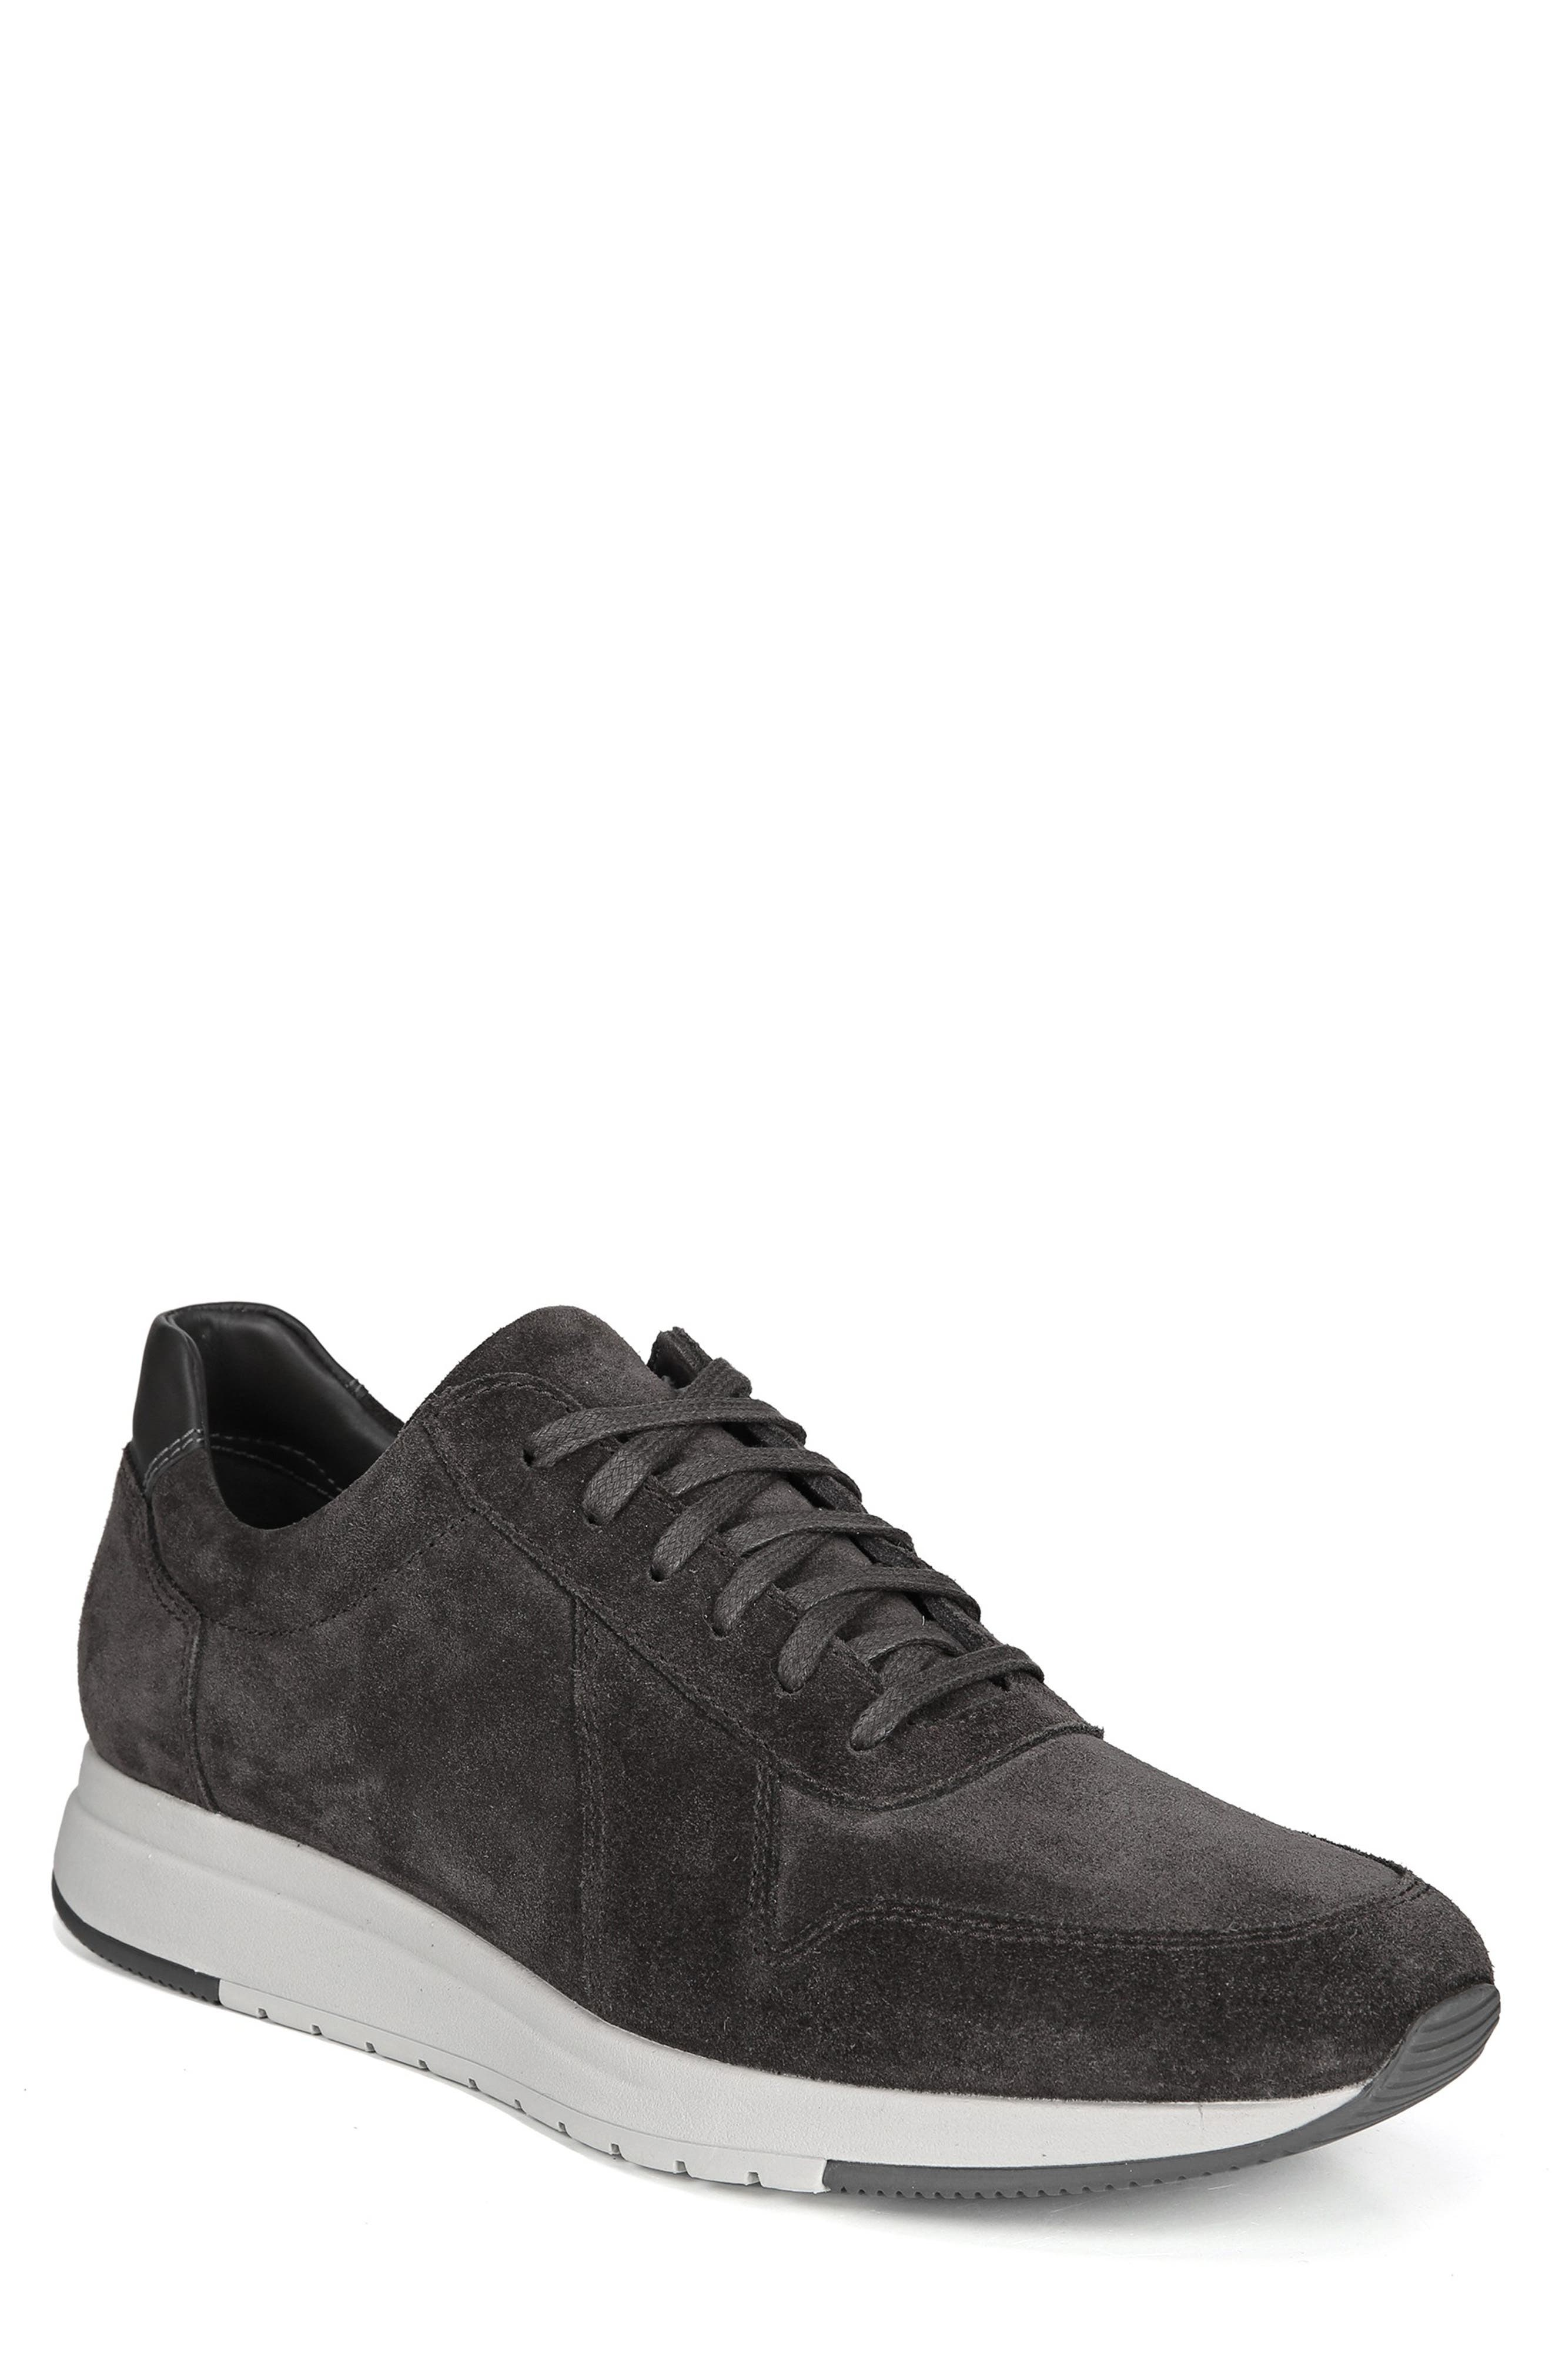 VINCE Pryor Suede Sneaker, Main, color, 020